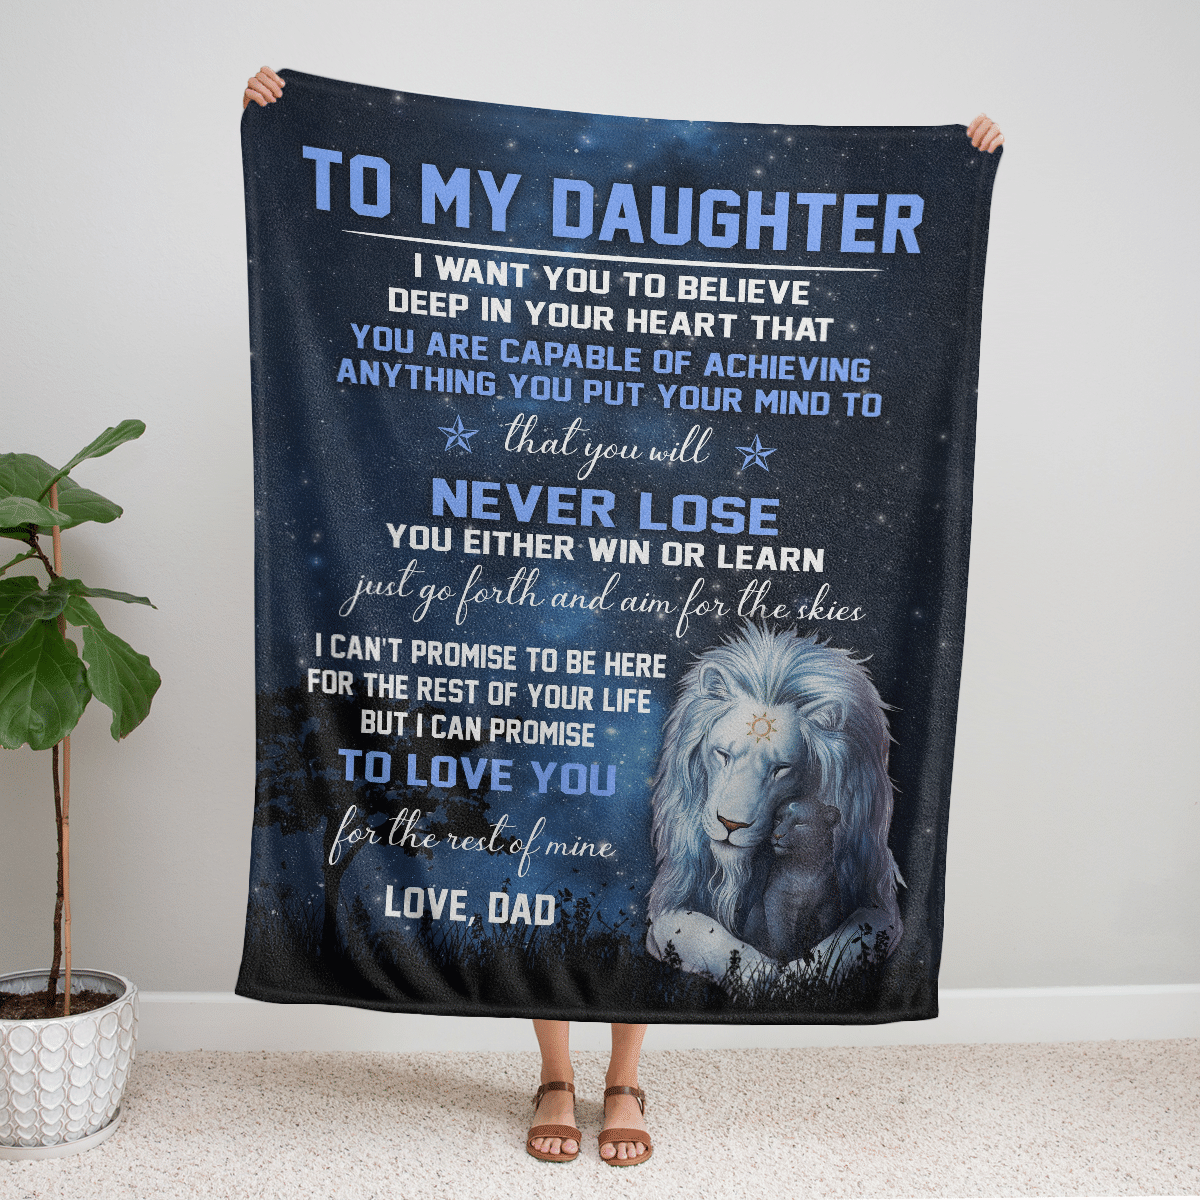 TO MY DAUGHTER LOVE DAD LIONS IN NIGHT SKY BLANKET